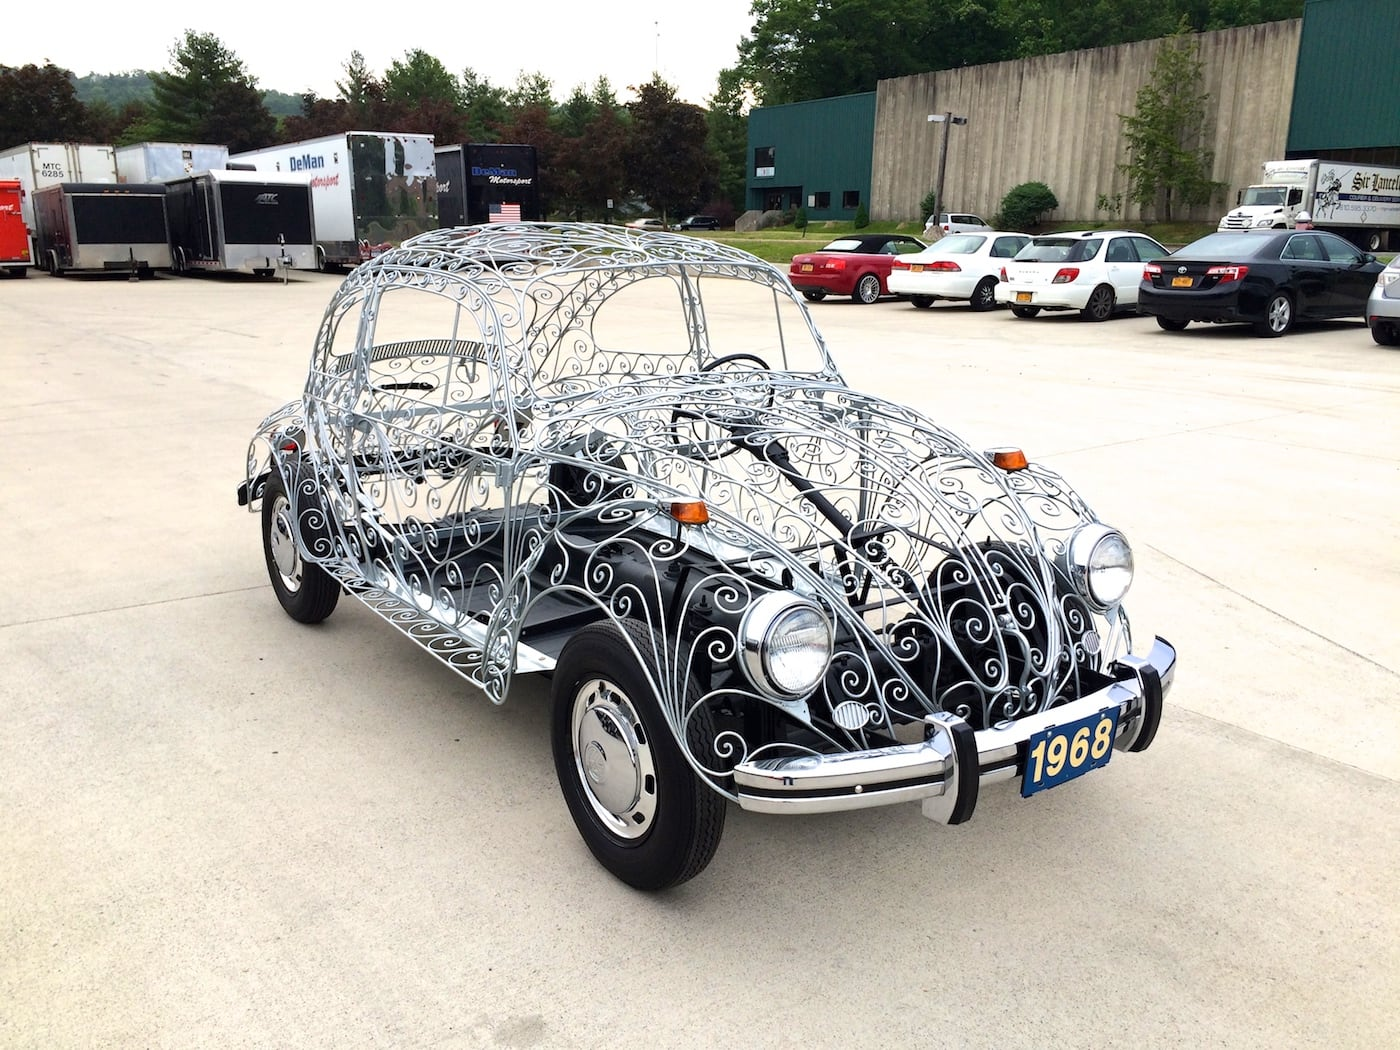 1968 Wrought-Iron Beetle Restoration-16